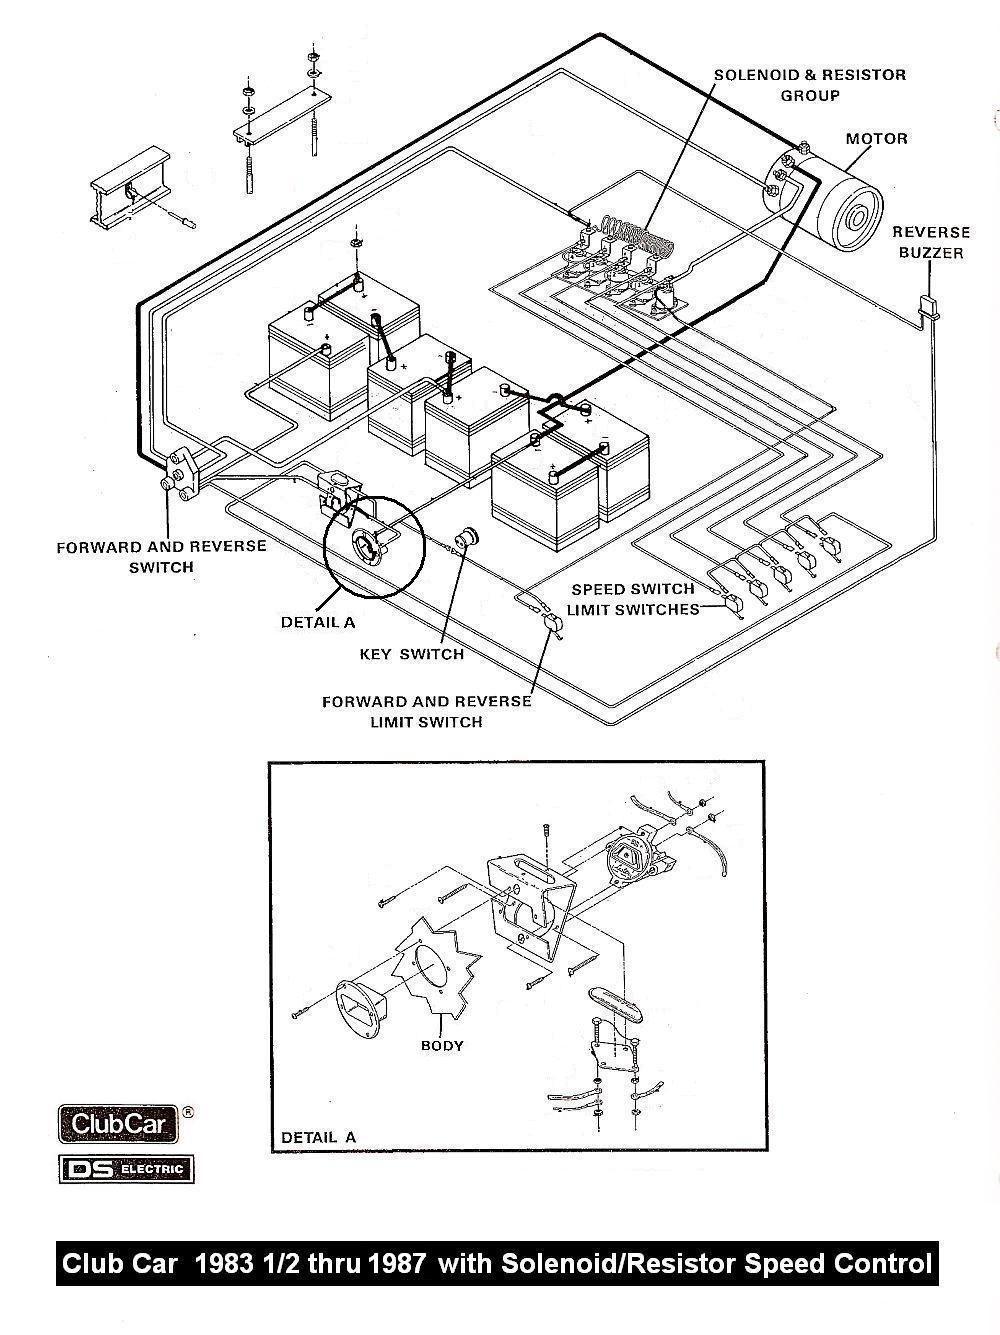 0e8d045370be7682b159825224221faa vintagegolfcartparts com *freezer & crock pot* pinterest club car golf cart 36 volt battery wiring diagram at reclaimingppi.co